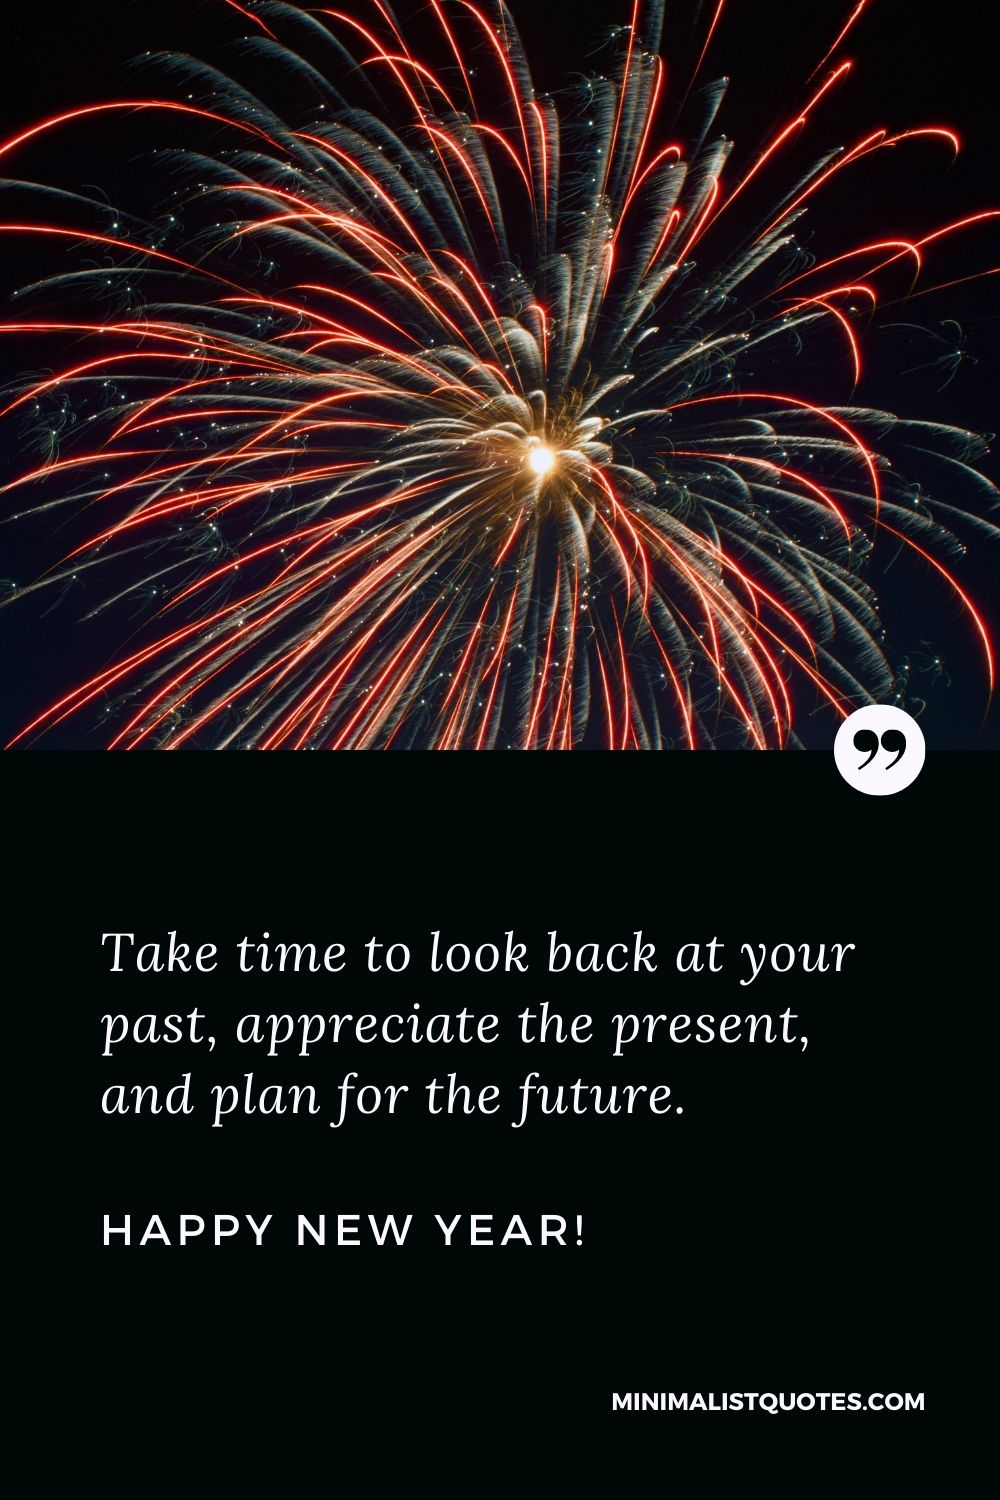 Happy new year 2021 quotes: Take time to look back at your past, appreciate the present, and plan for the future. Happy New Year!